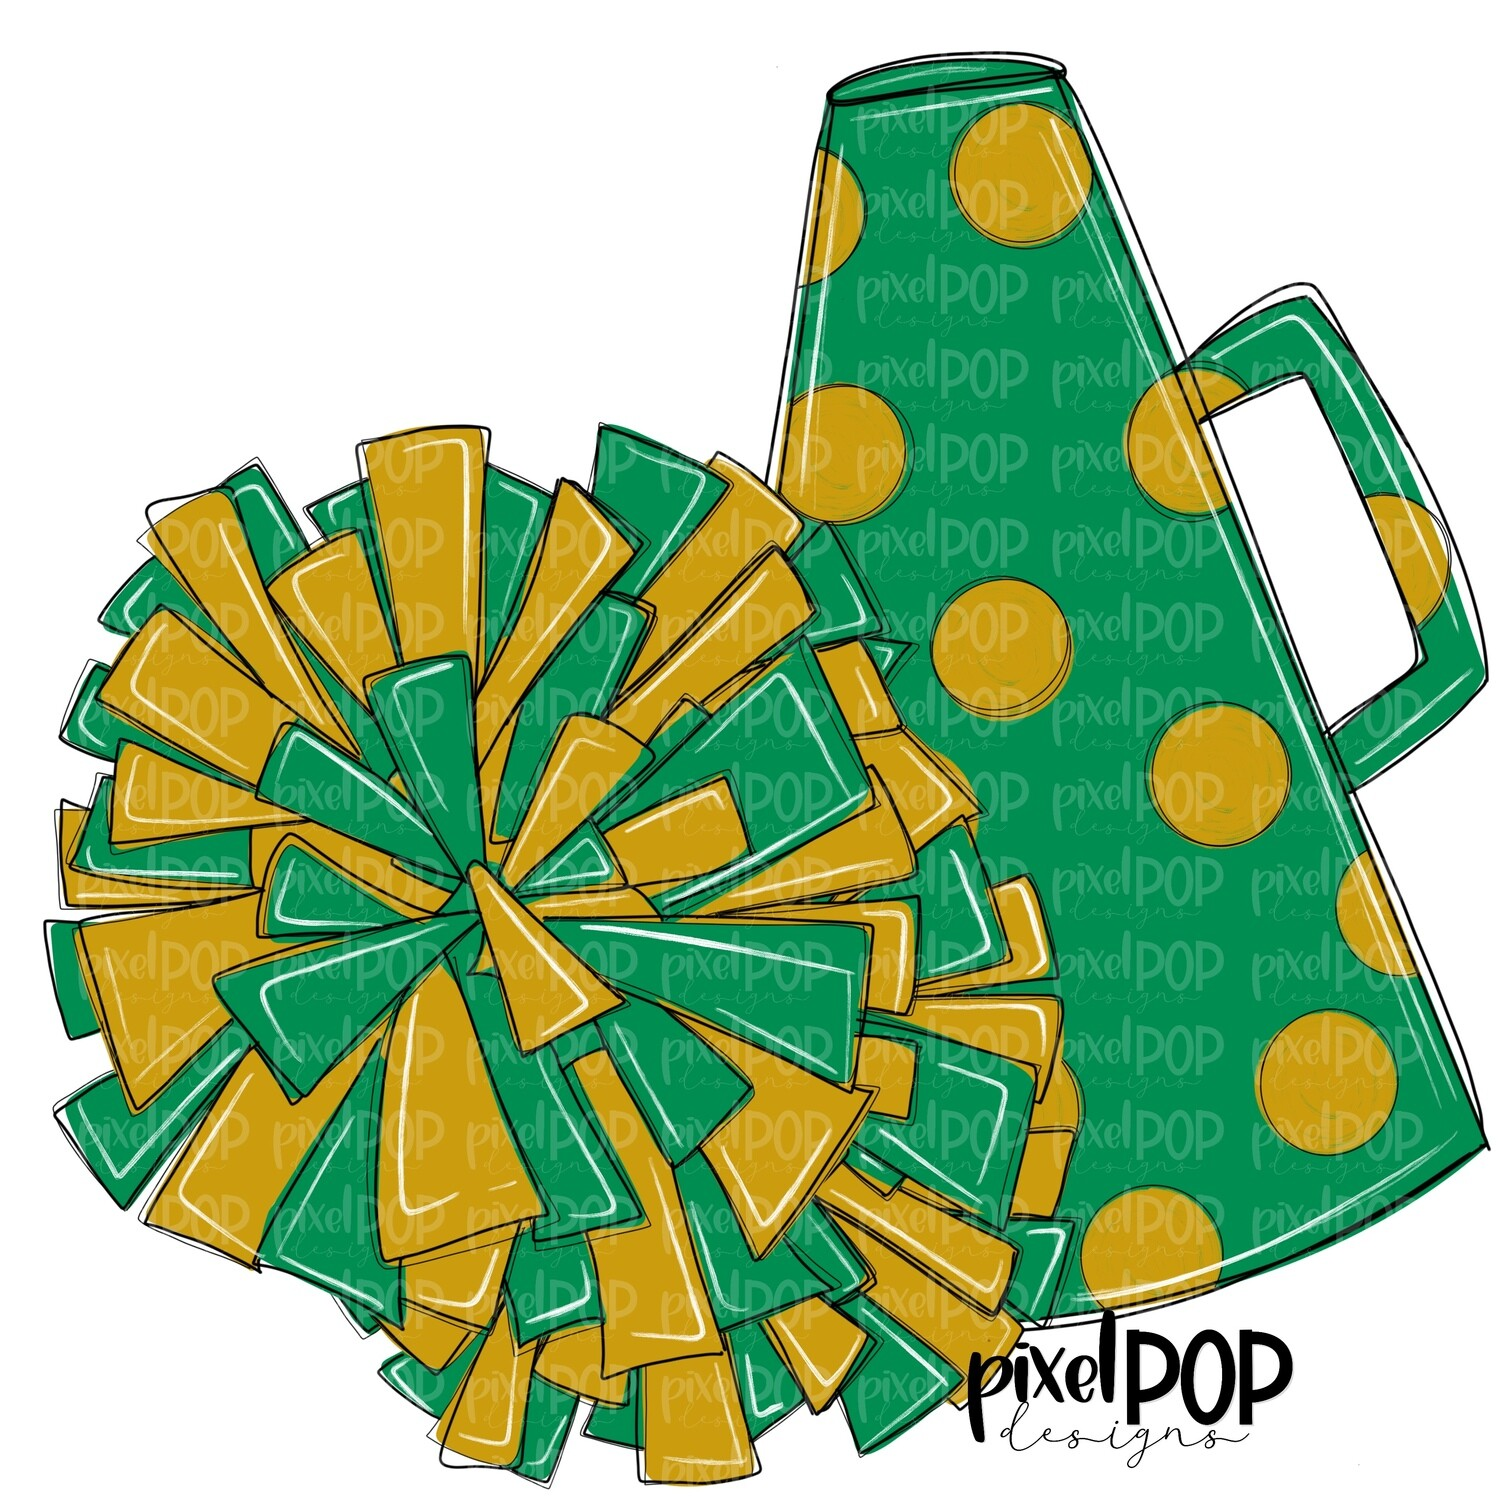 Cheerleading Megaphone and Poms Green and Gold PNG | Cheerleading | Cheer Design | Cheer Art | Cheer Blank | Sports Art